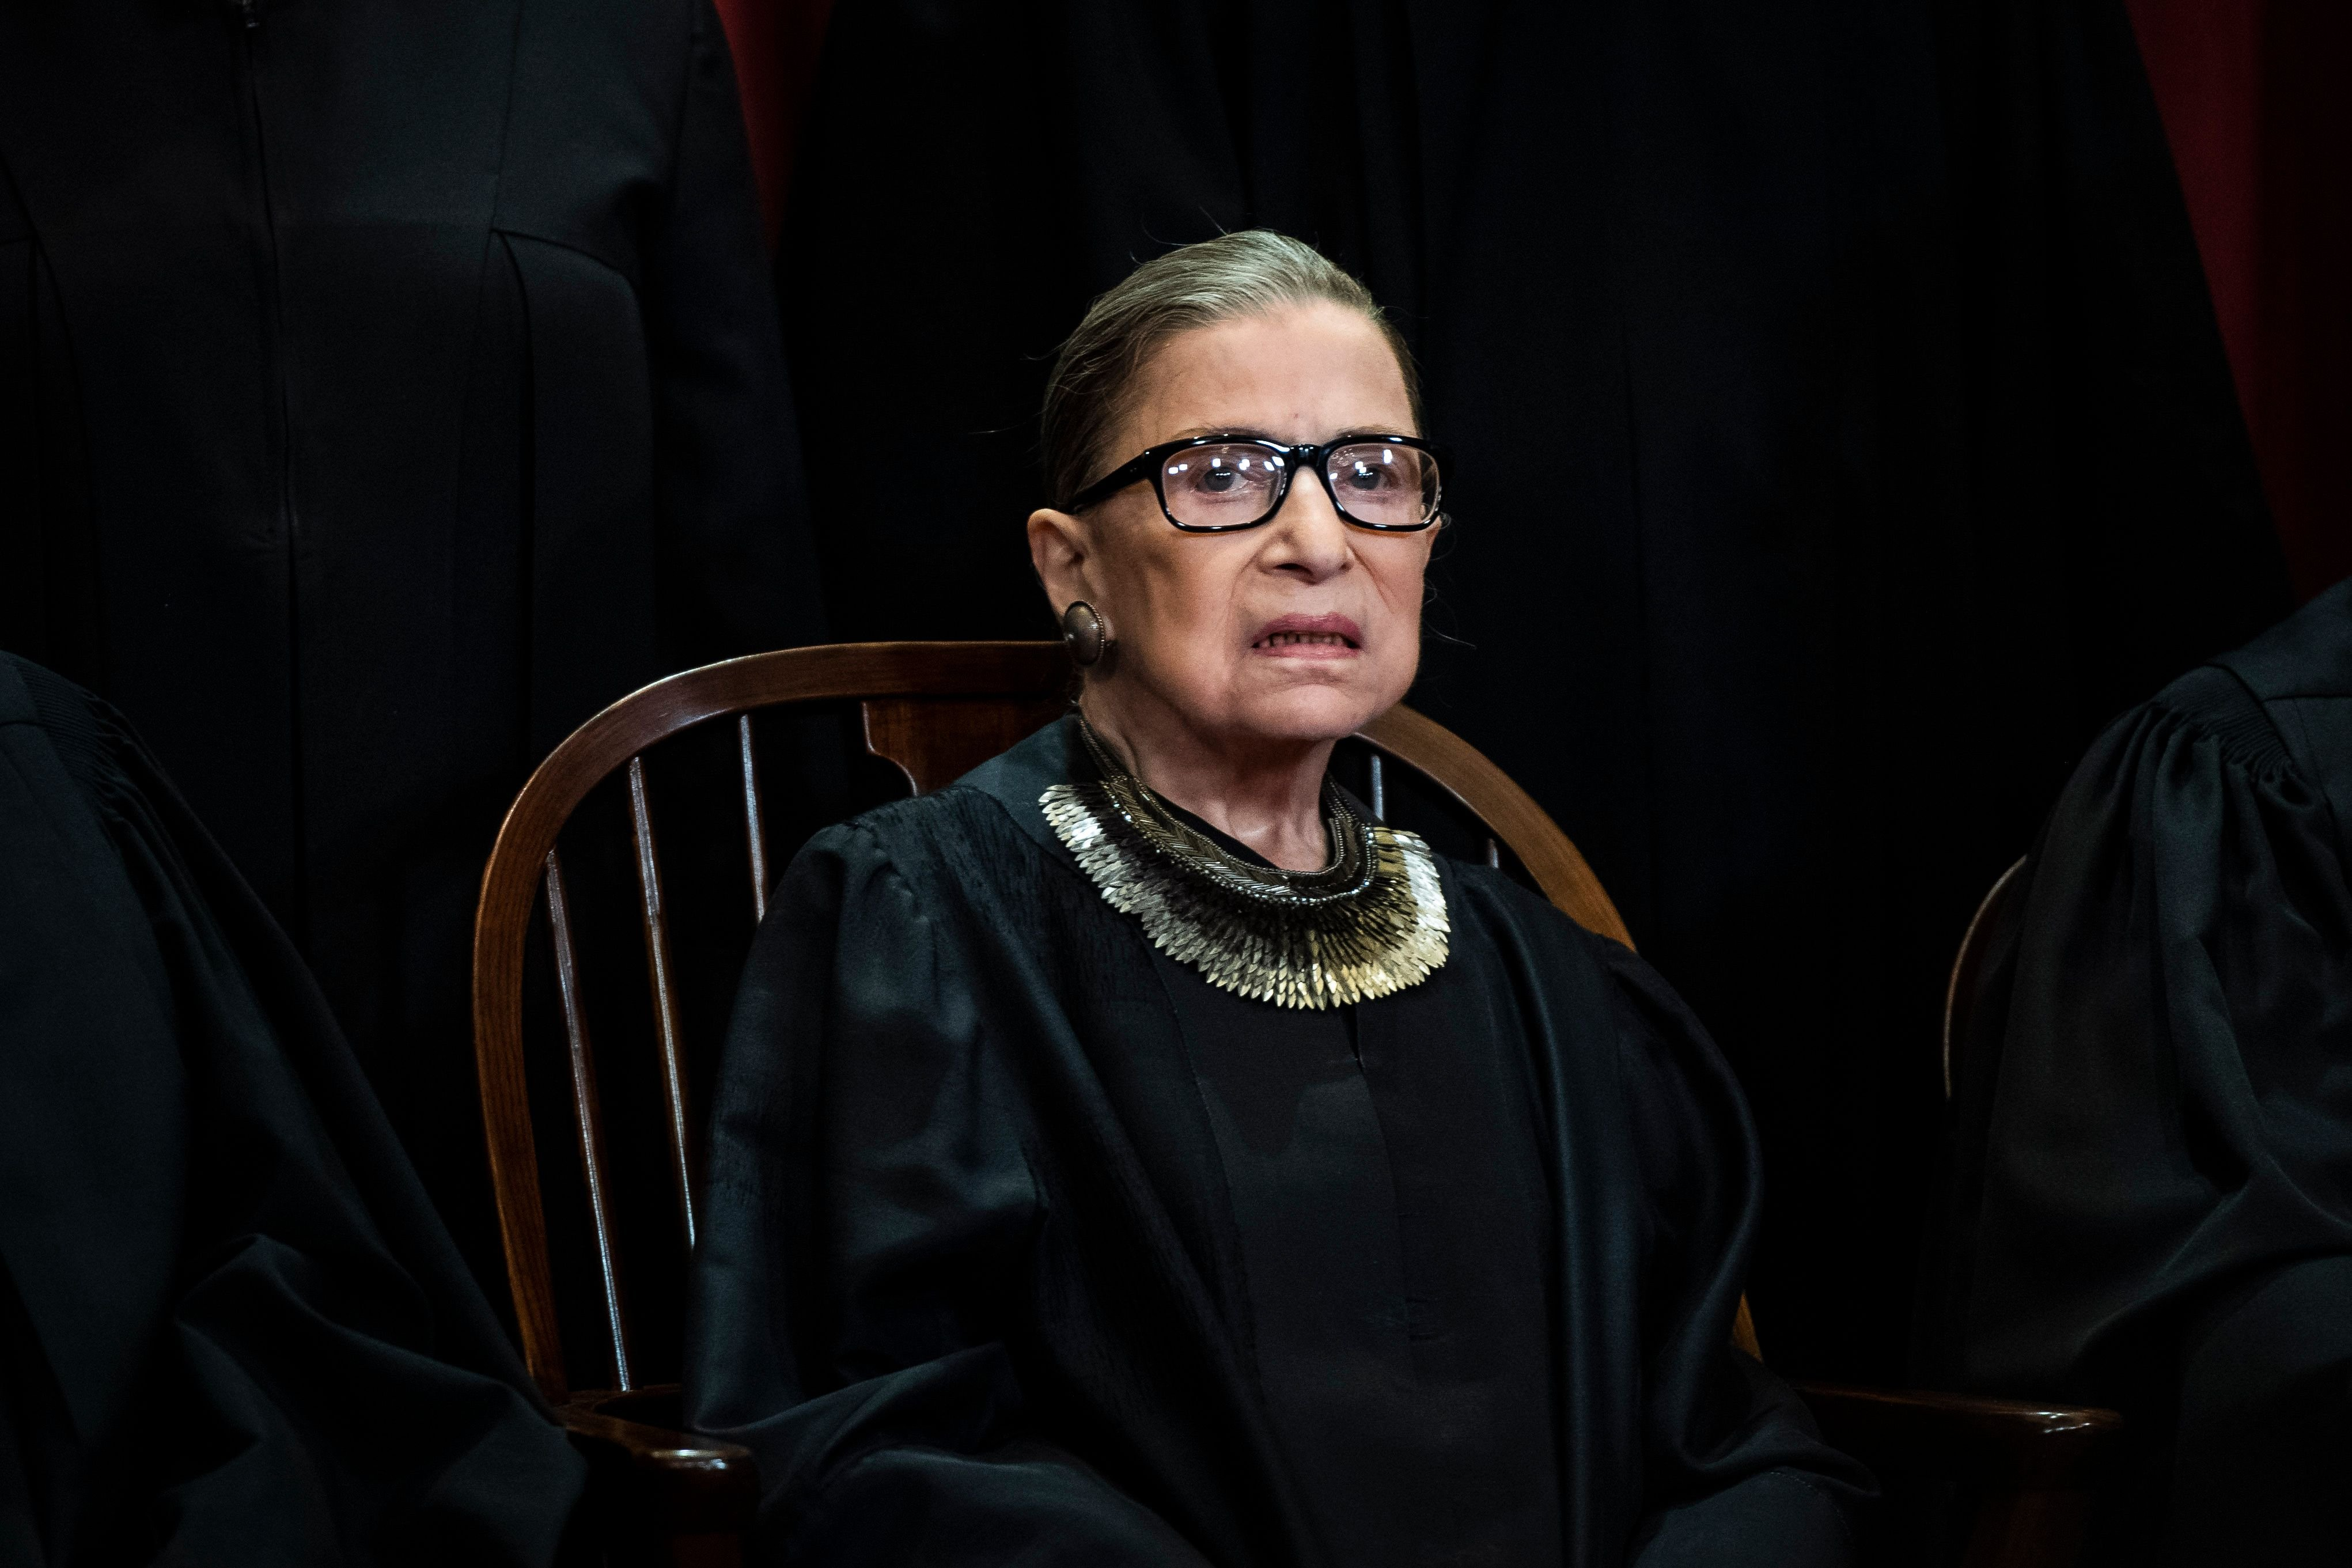 Ruth Bader Ginsburg during an official group photo at the Supreme Court on Friday, Nov. 30, 2018 in Washington, DC. | Source: Getty Images